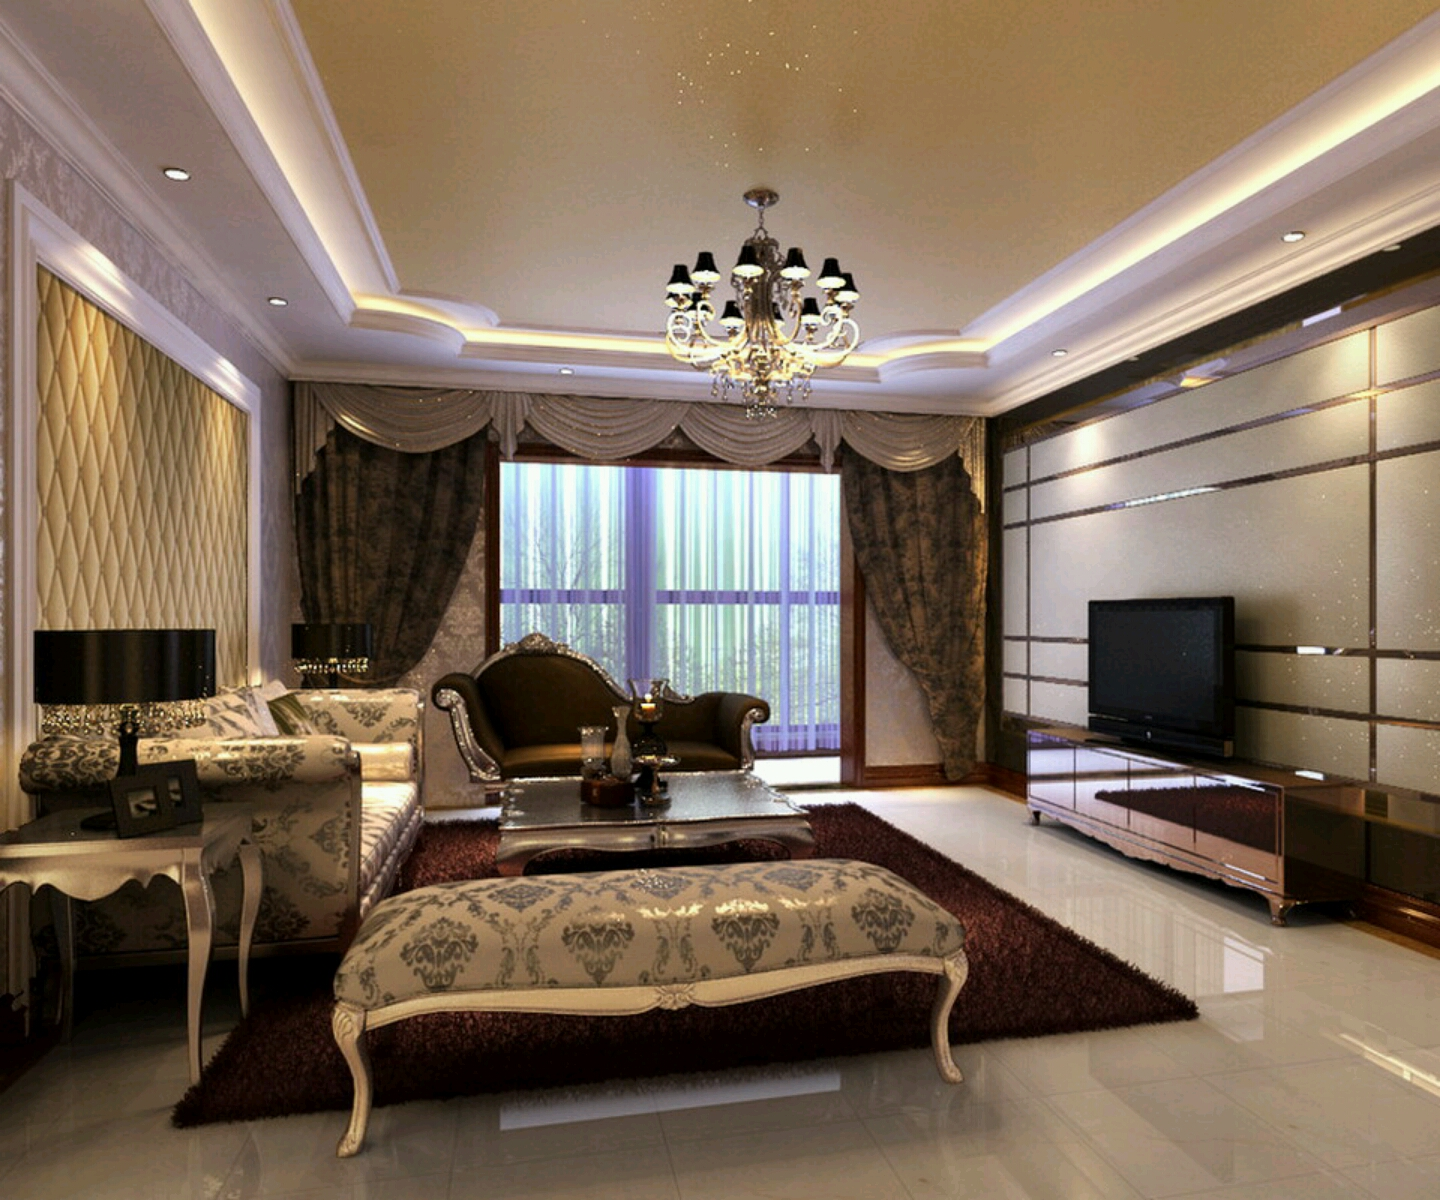 Home Interior Decorating home decoration design modern home interior design and. home